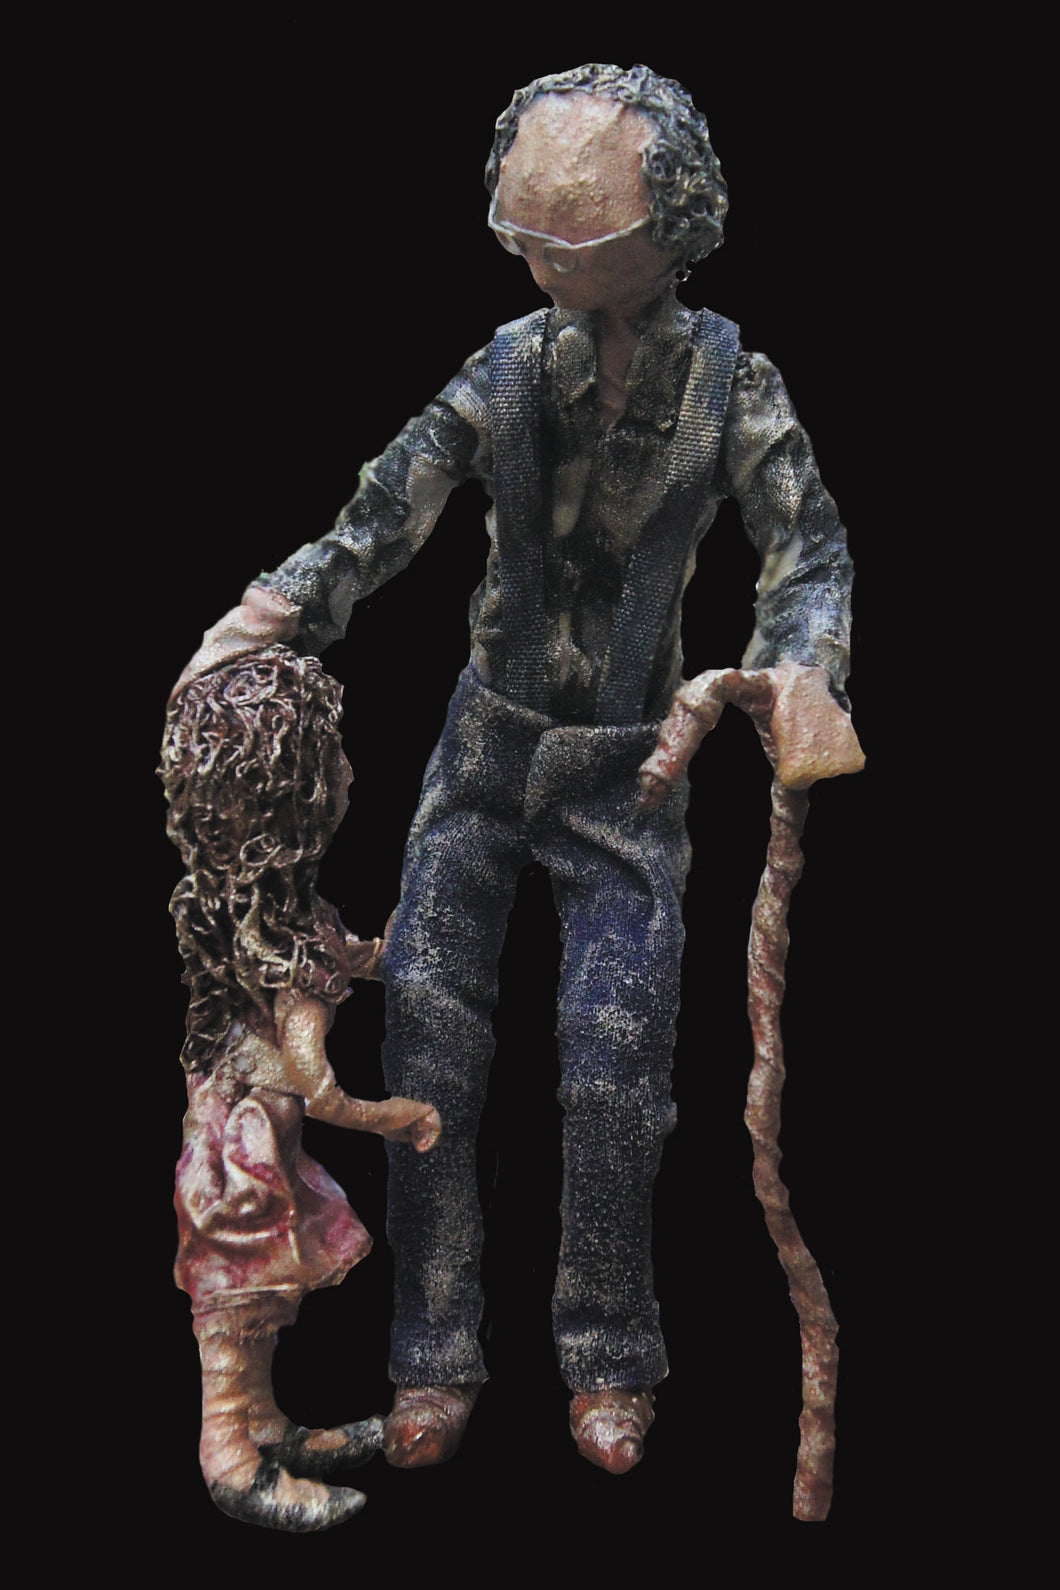 Grandpa mixed media sculpture from West Coast Artisan Gallery